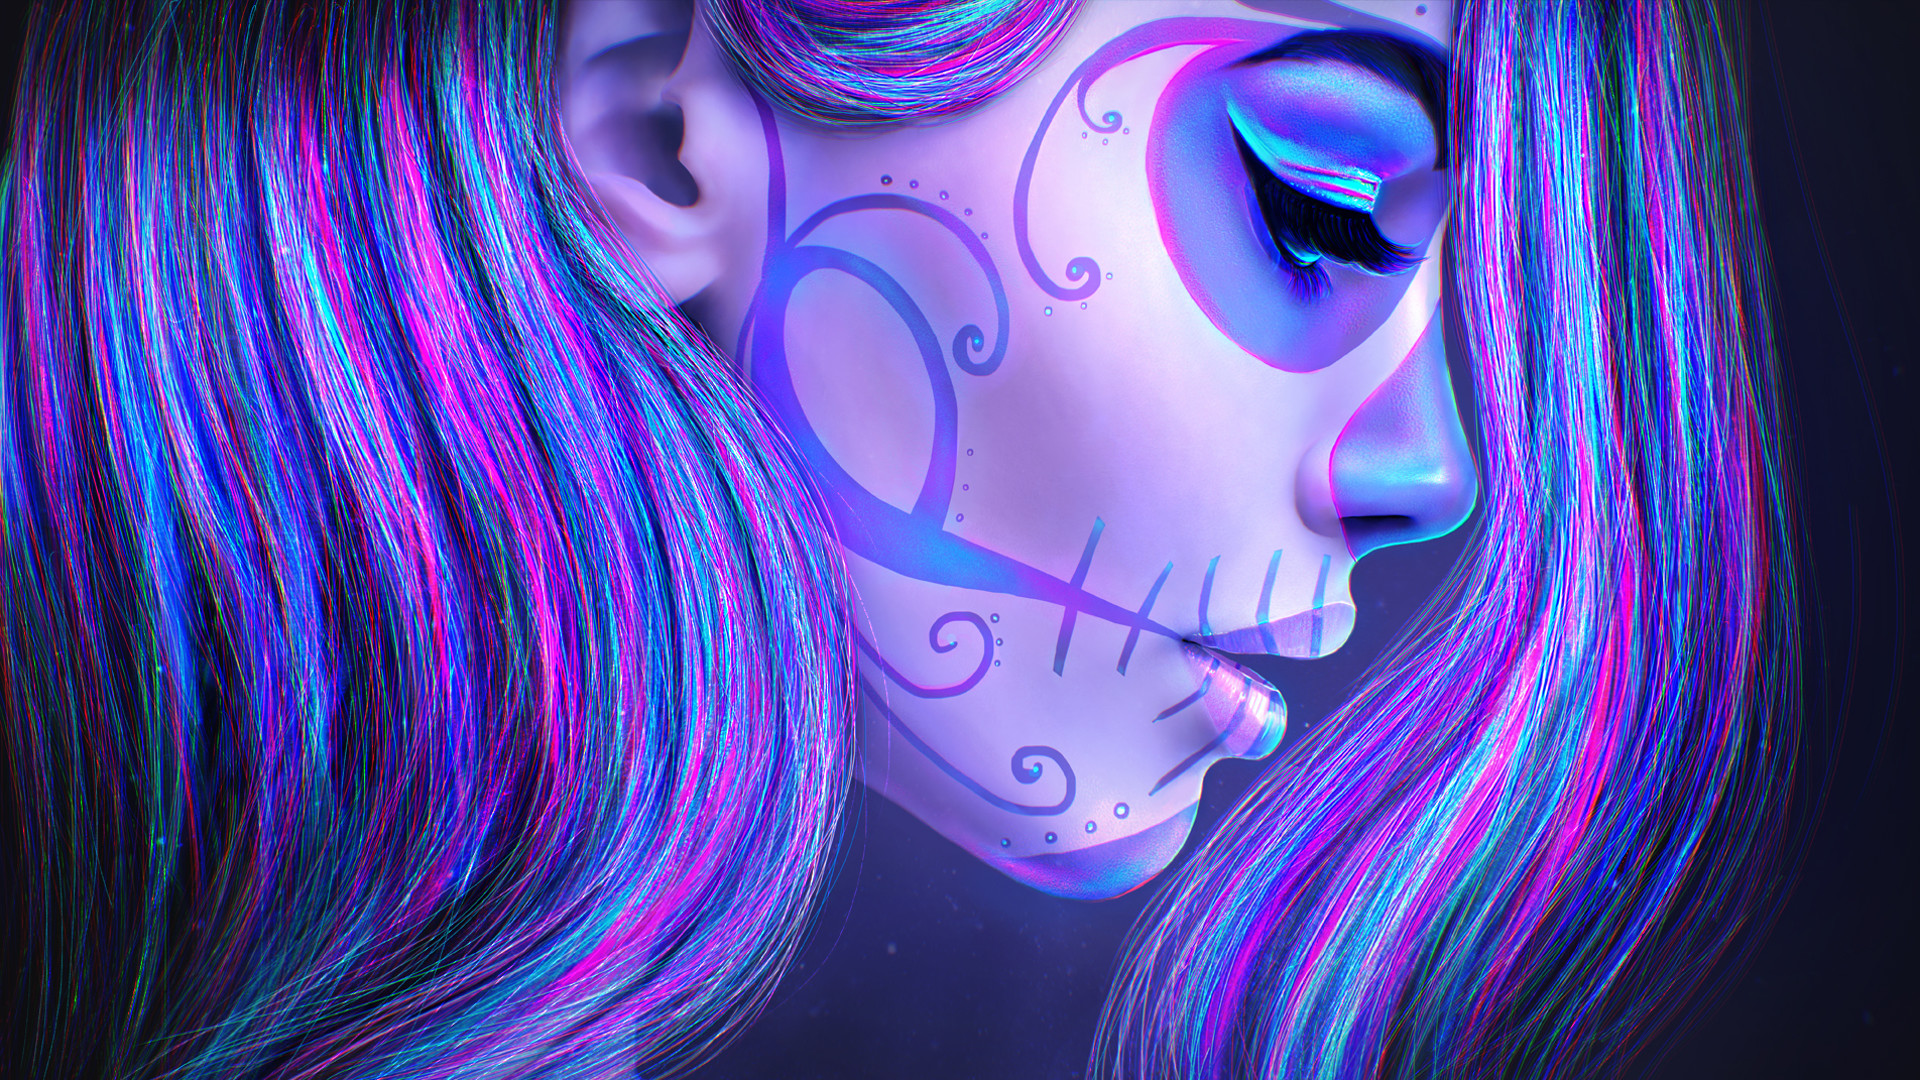 Distinguished Free Sugar Skull Wallpaper Hd Wallpaper Background Sugar Skull Wallpapers Background Sugar Skull Wallpaper houzz-02 Sugar Skull Wallpaper